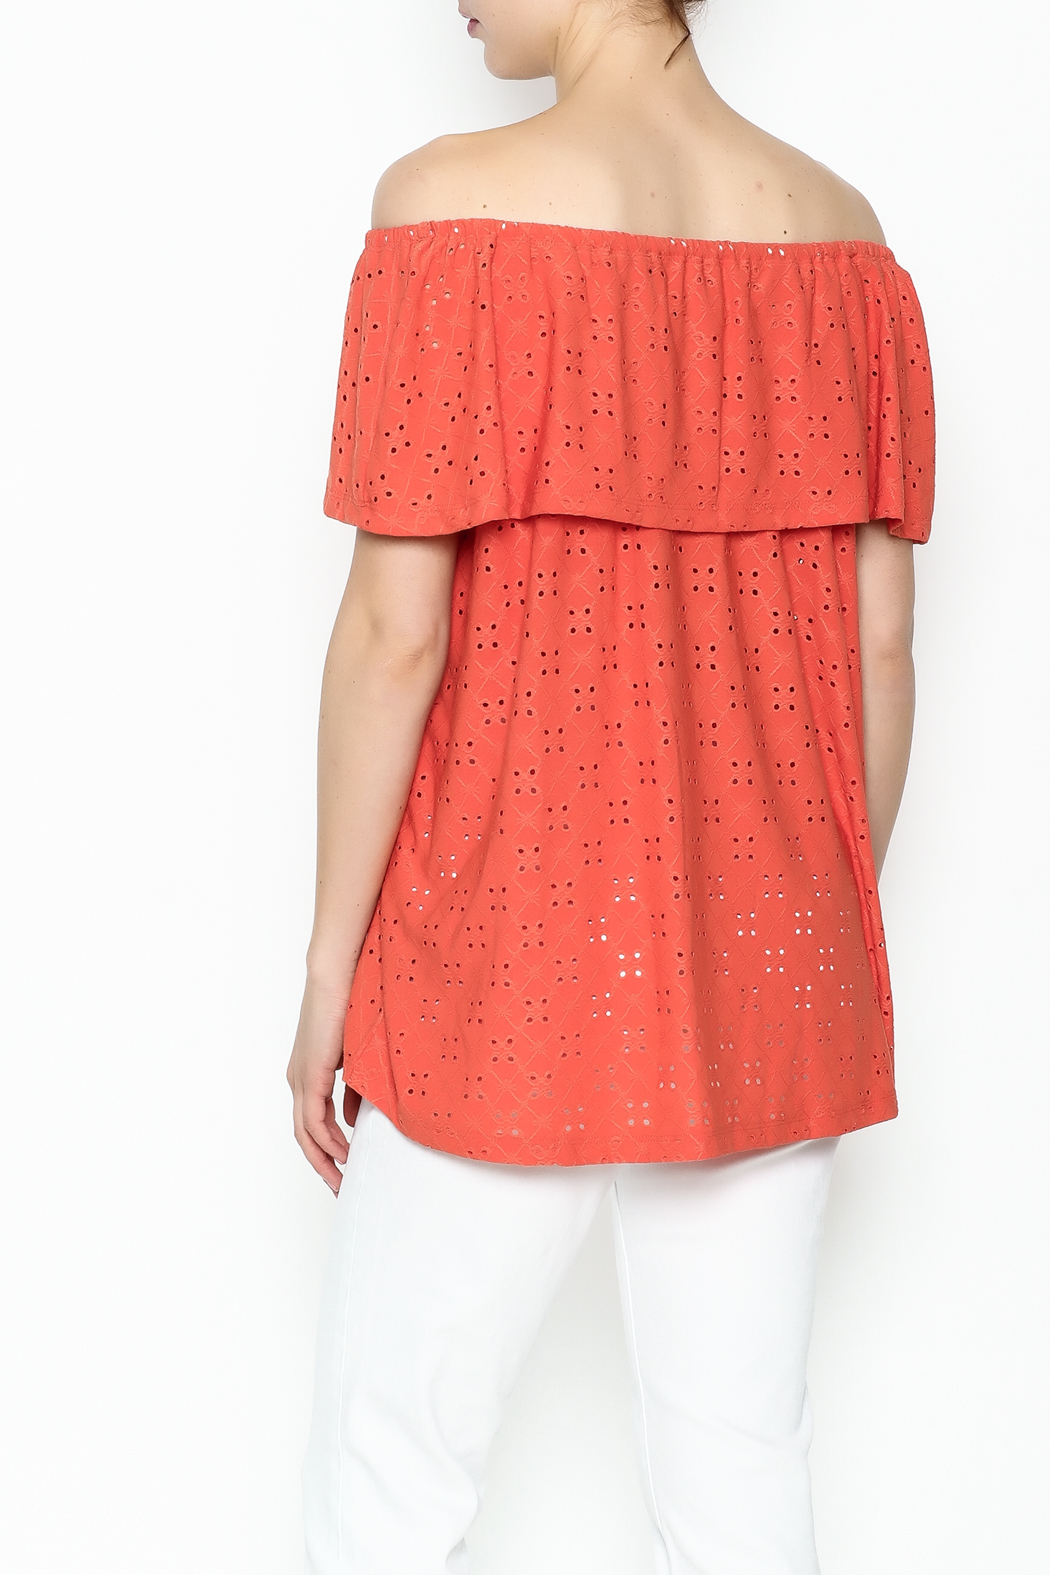 Multiples Eyelet Off Shoulder Top - Back Cropped Image